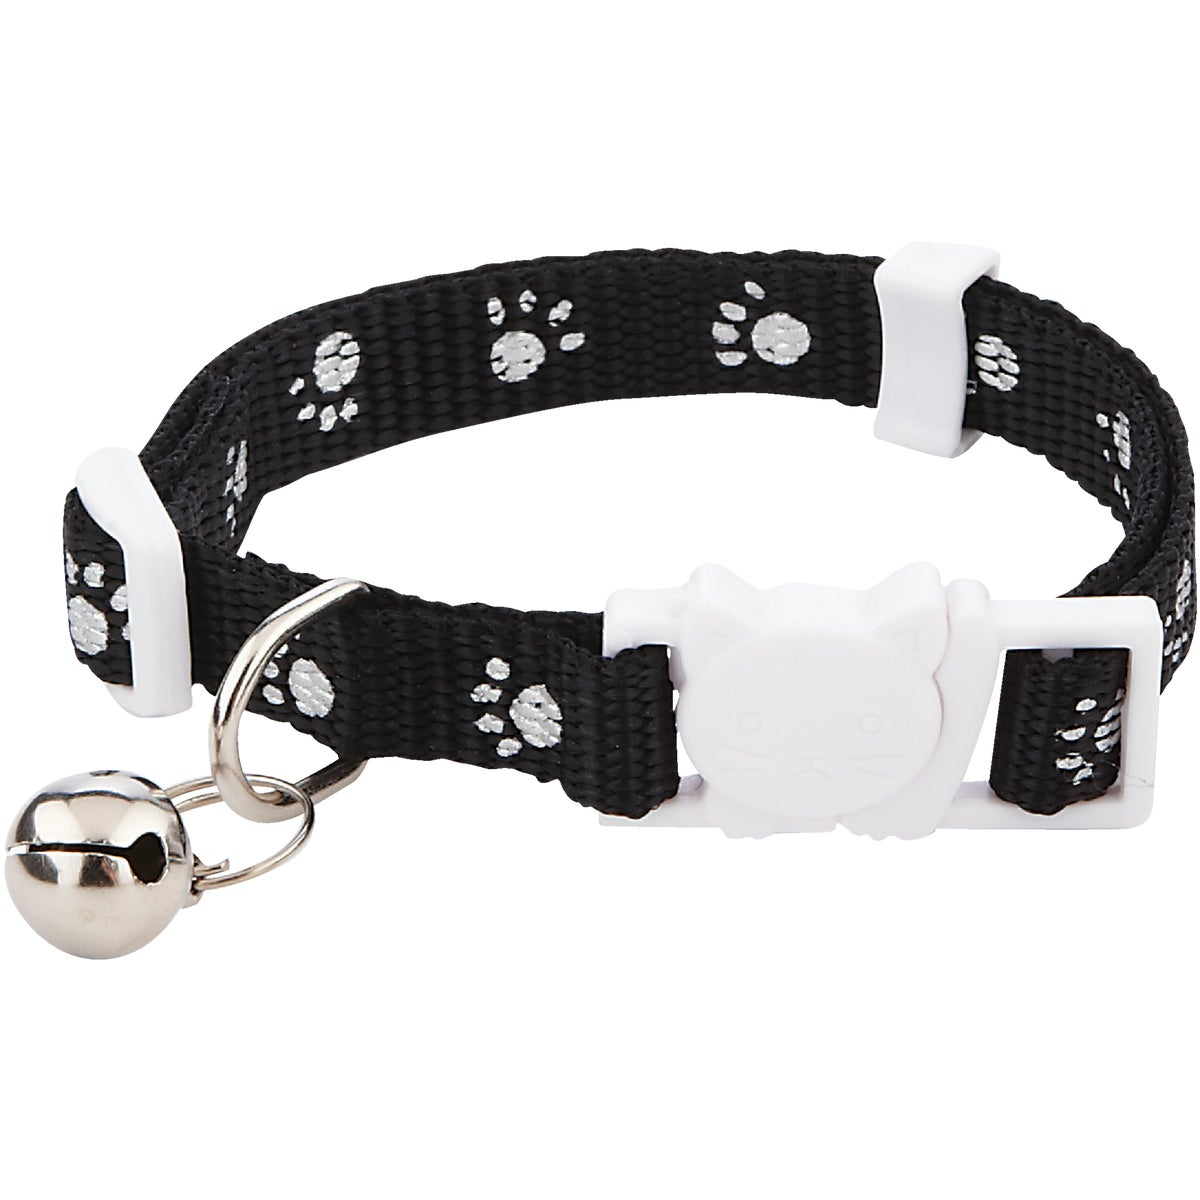 3/8X8-12 BREAKWAY COLLAR - 39149 by Westminster Pet